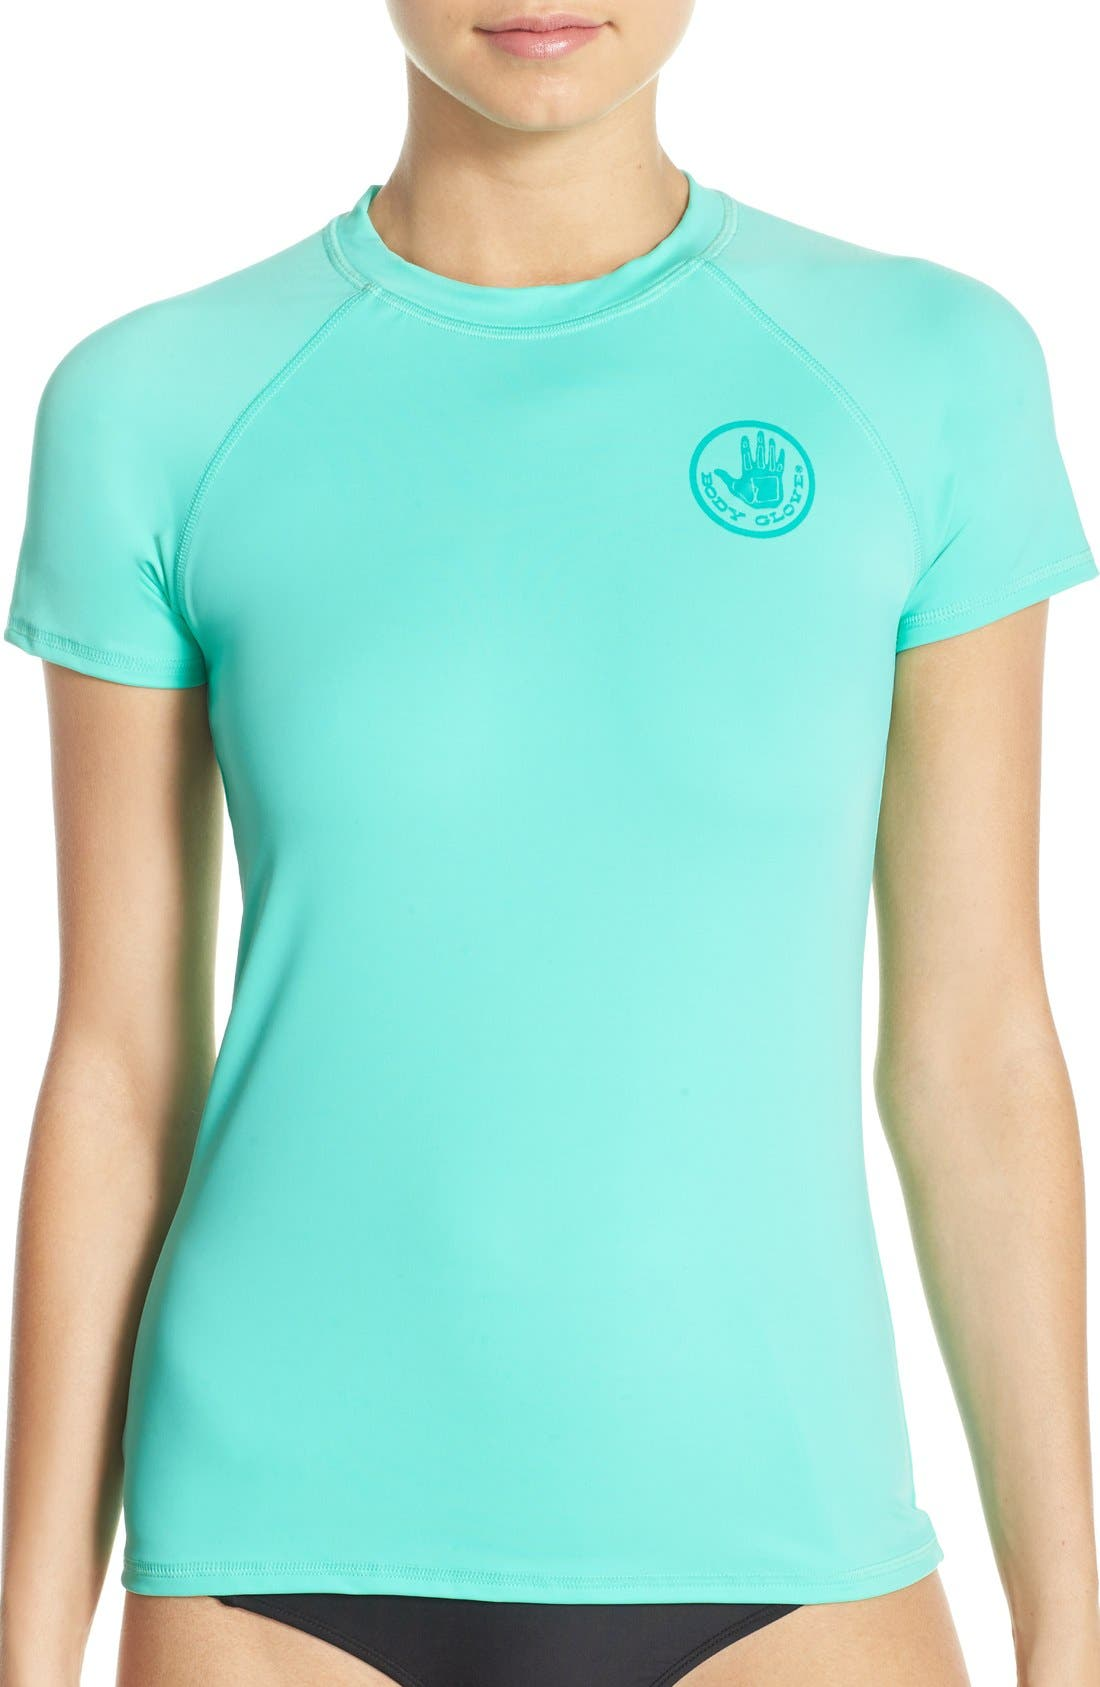 'Smoothies in Motion' Short Sleeve Rashguard,                             Main thumbnail 3, color,